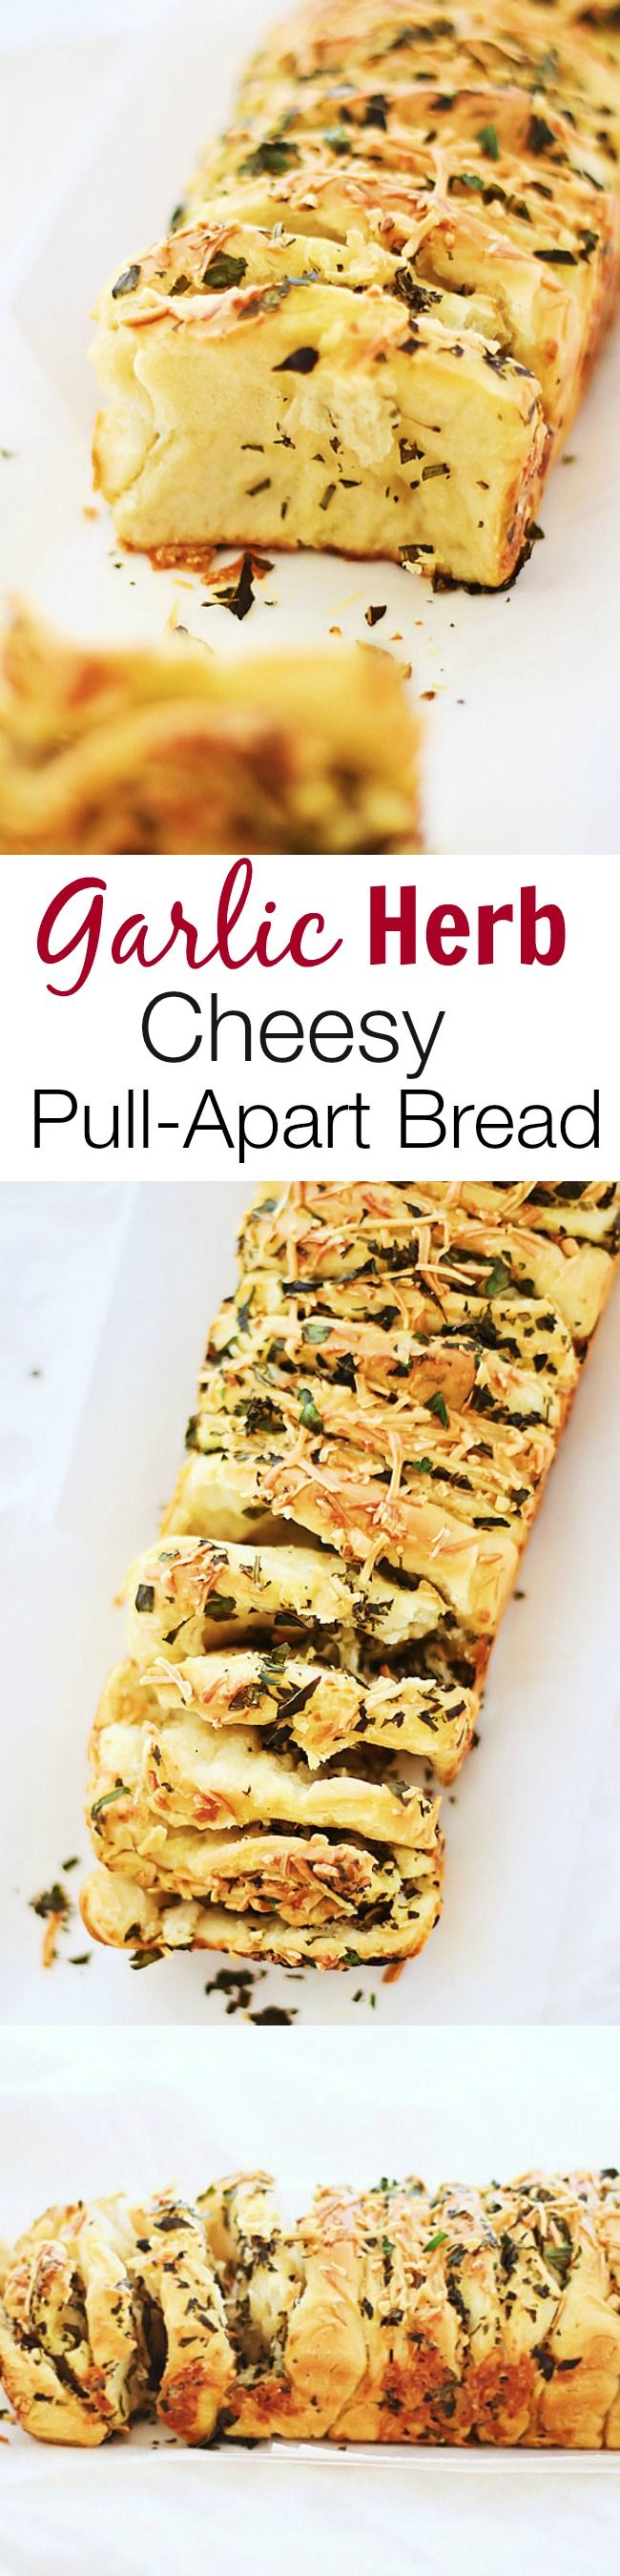 HOLIDAY BOARD: Garlic Herb and Cheese Pull Apart Bread - Rasa Mal...